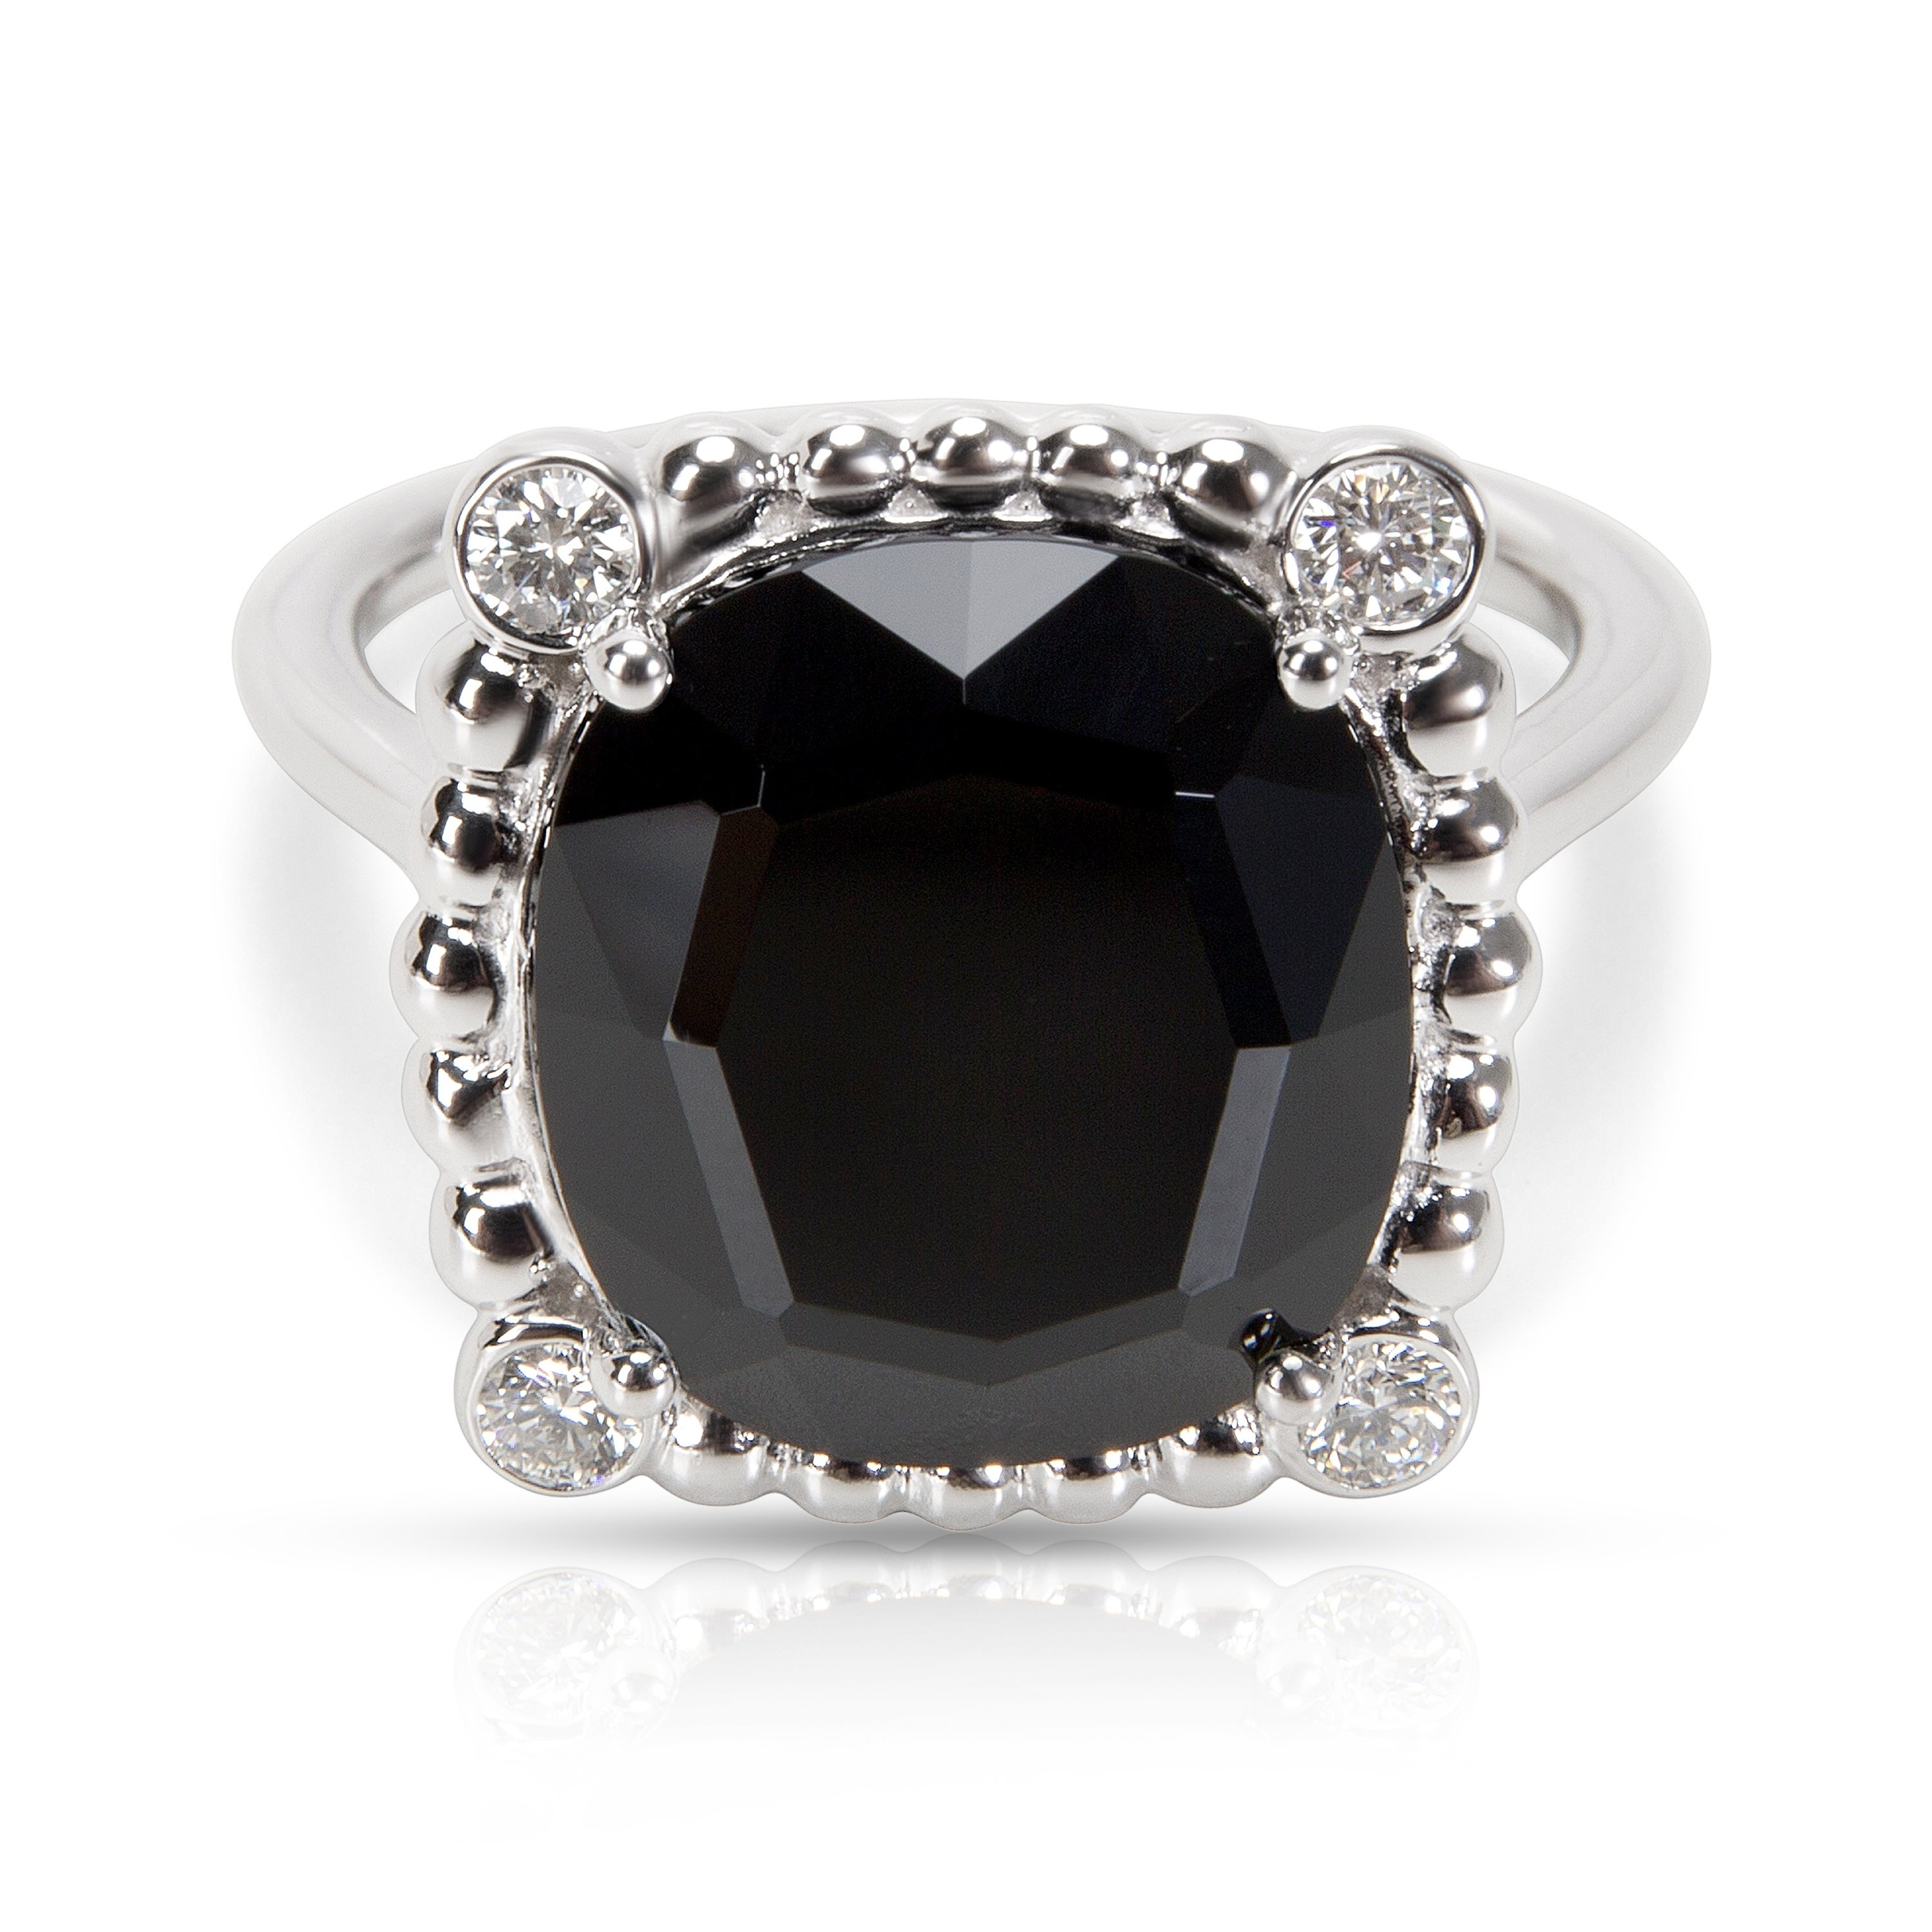 4ae5e11dc Shop Pre-Owned Tiffany & Co. Ziegfeld Onyx & Diamond Spinel Ring in  Sterling Silver - Free Shipping Today - Overstock - 23056123